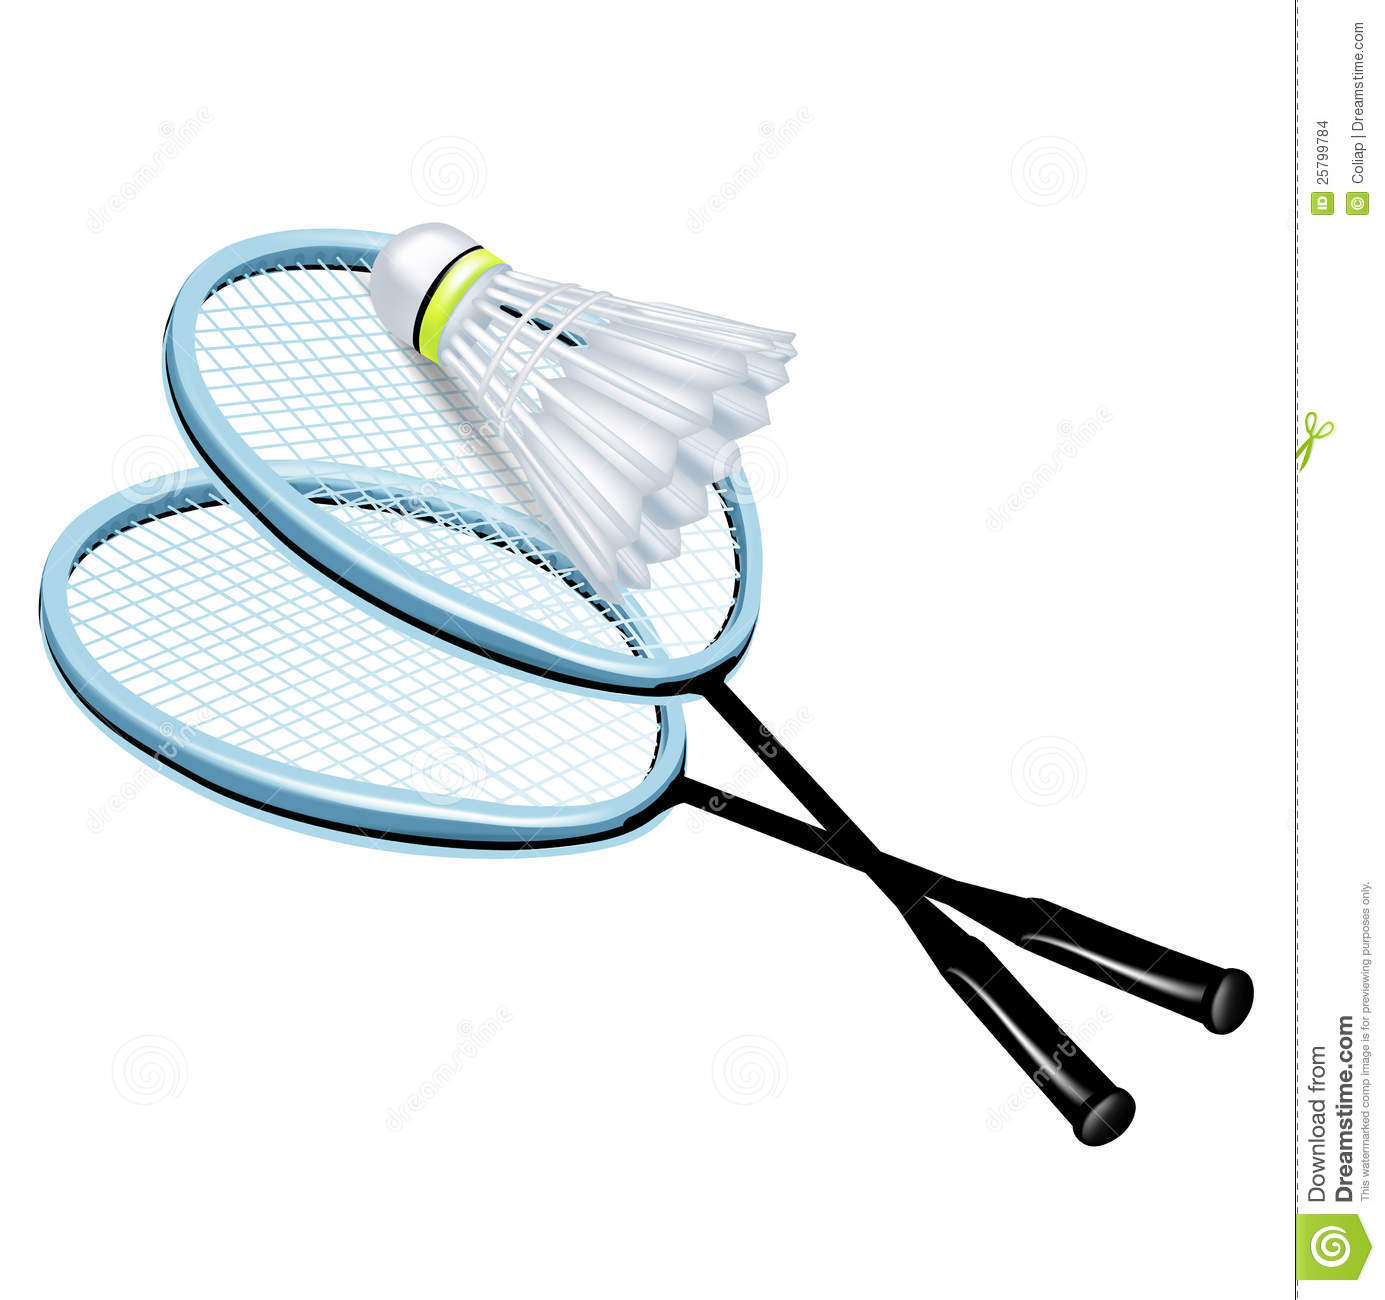 Two Rackets And Badminton Shuttlecock Stock Images - Image: 25799784